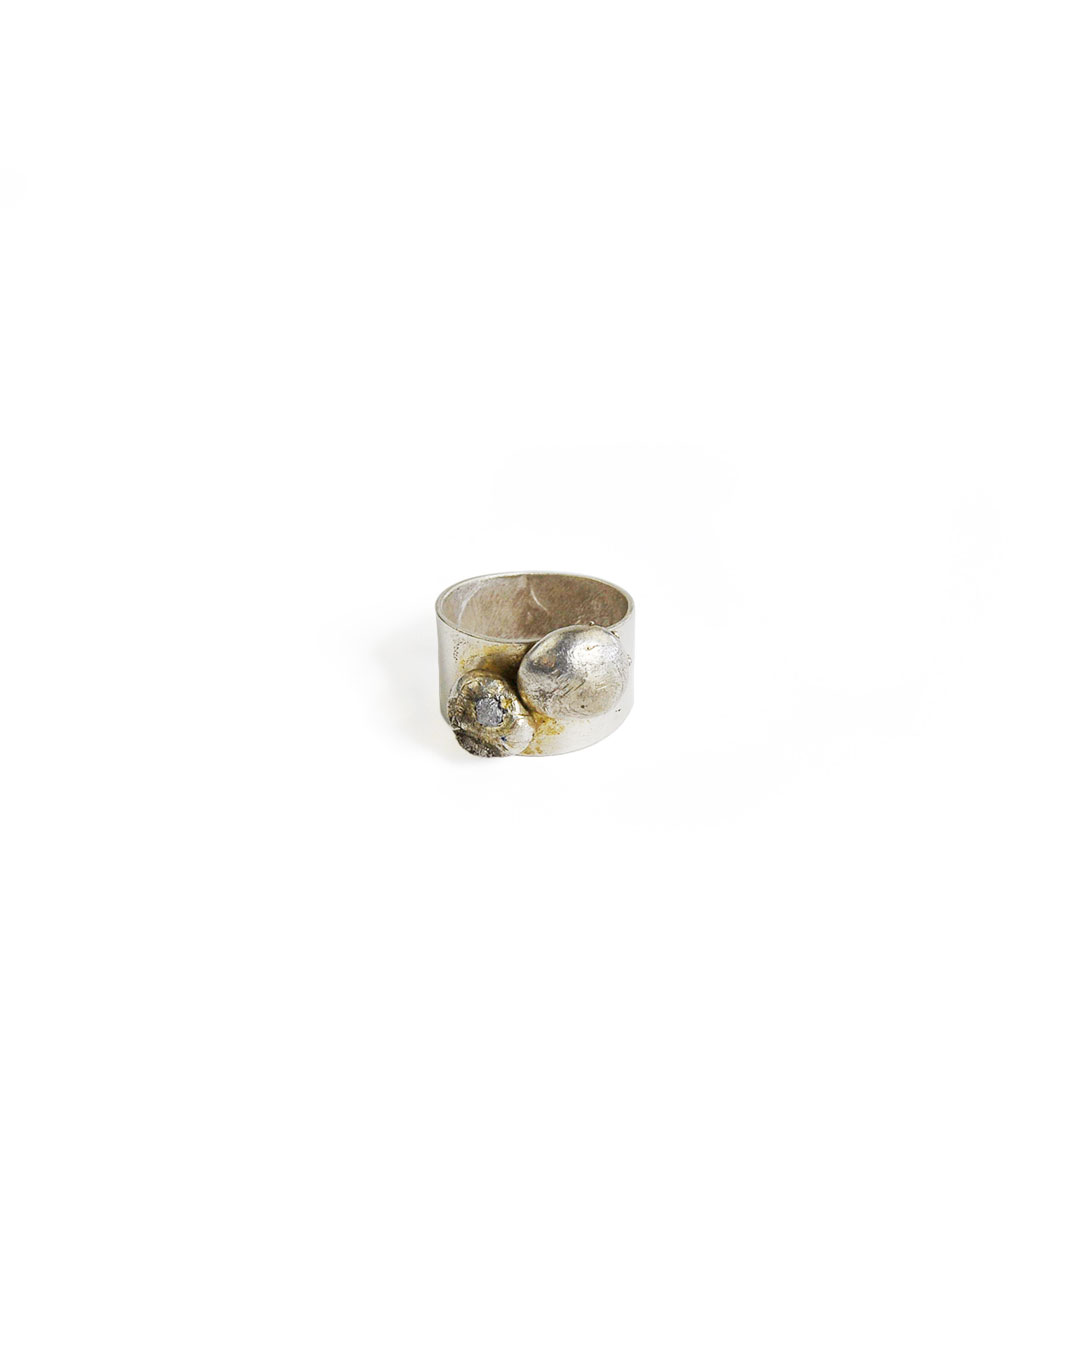 Rudolf Kocéa, untitled, 2014, ring; silver copper alloy, uncut diamonds, ø 19 x 12 mm, €680